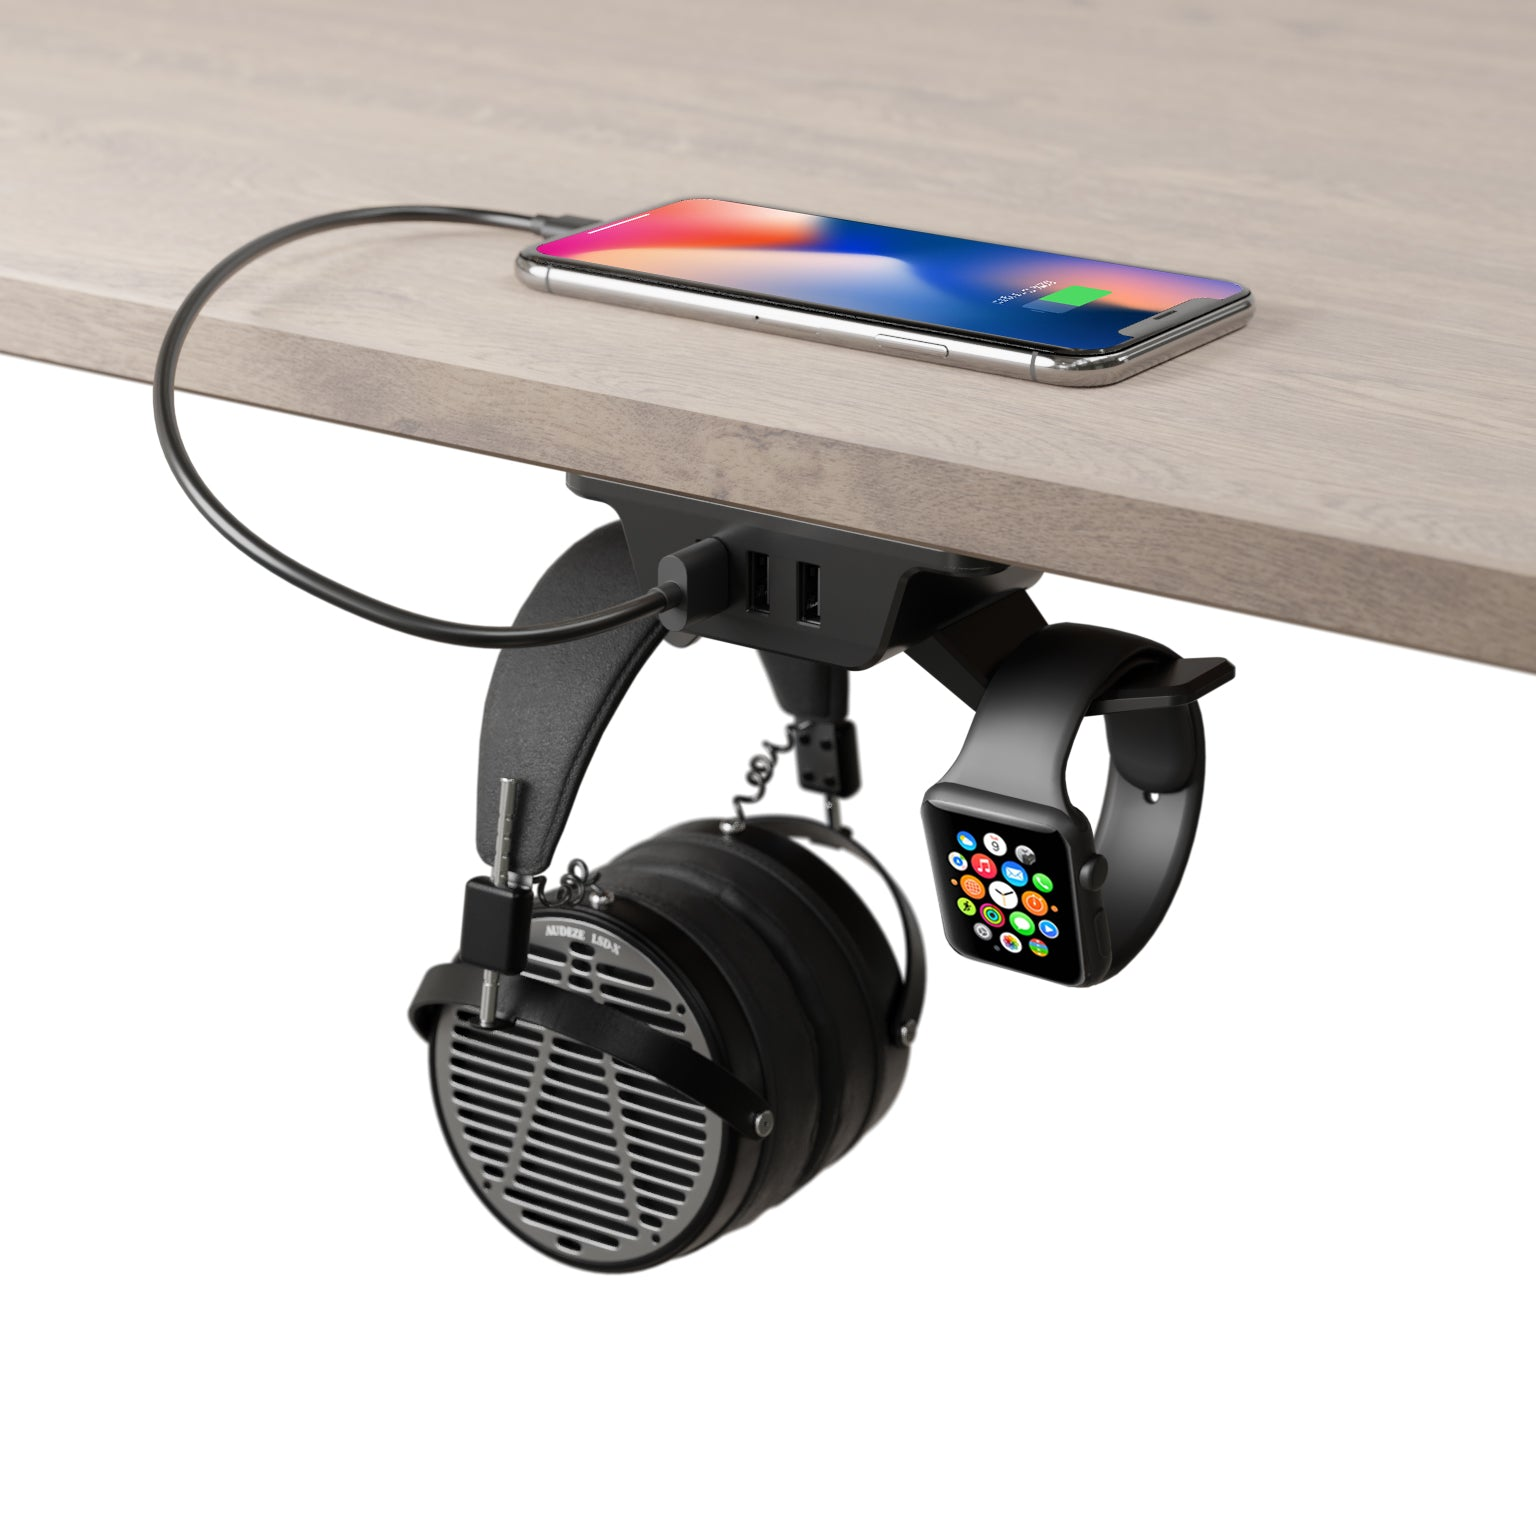 Headphone Hanger with USB Charger